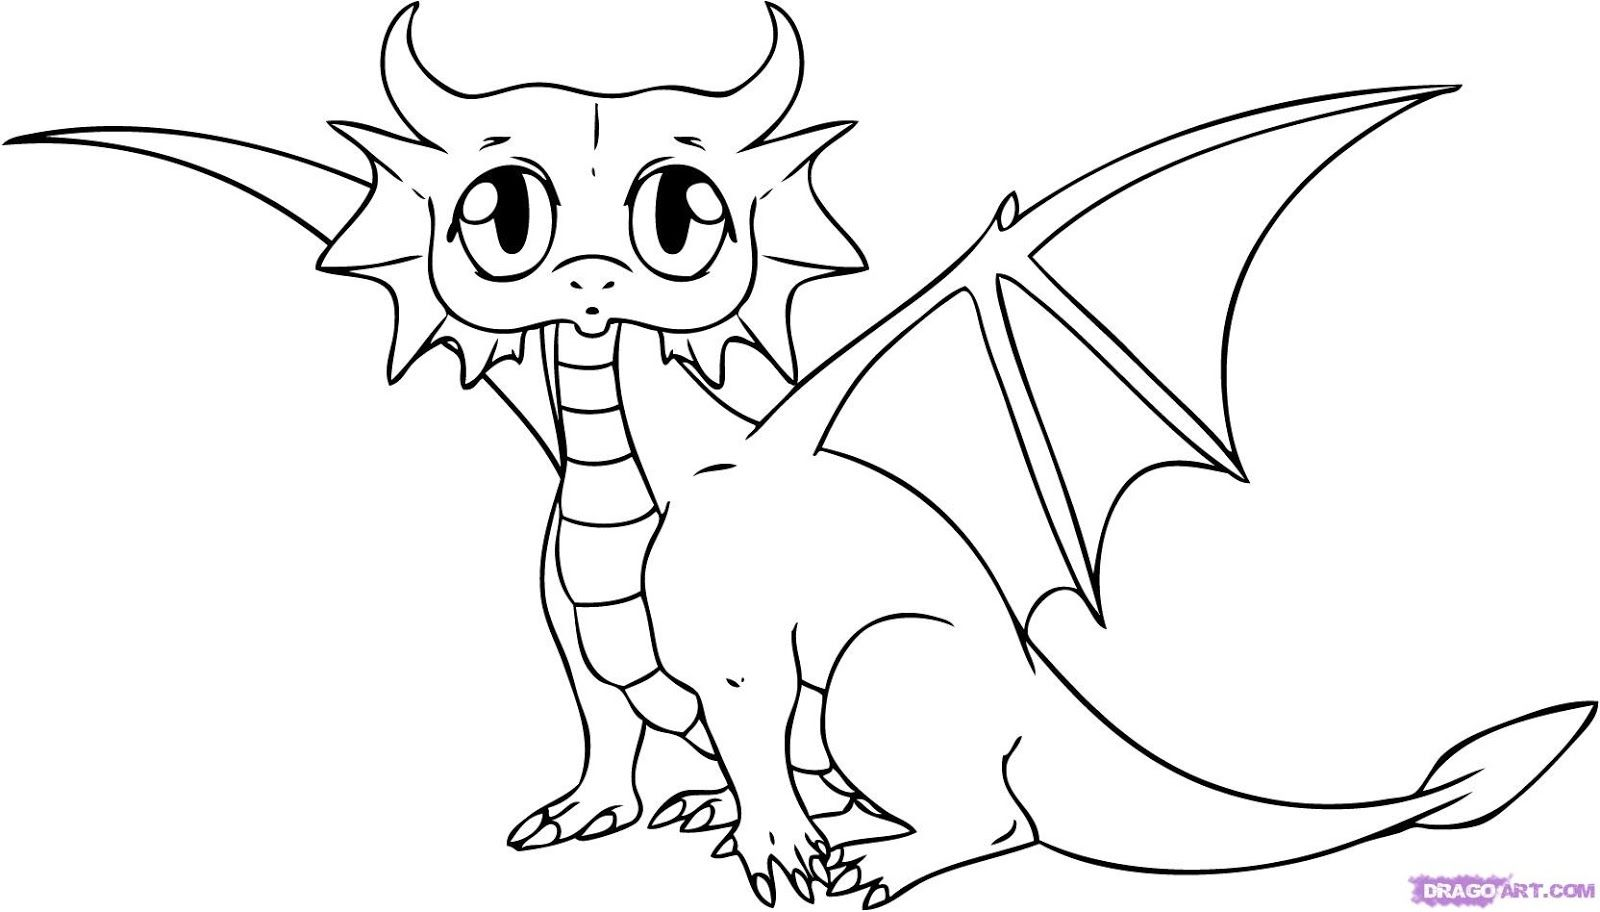 Images For Gt Easy Dragon Drawings For Kids Easy Dragon